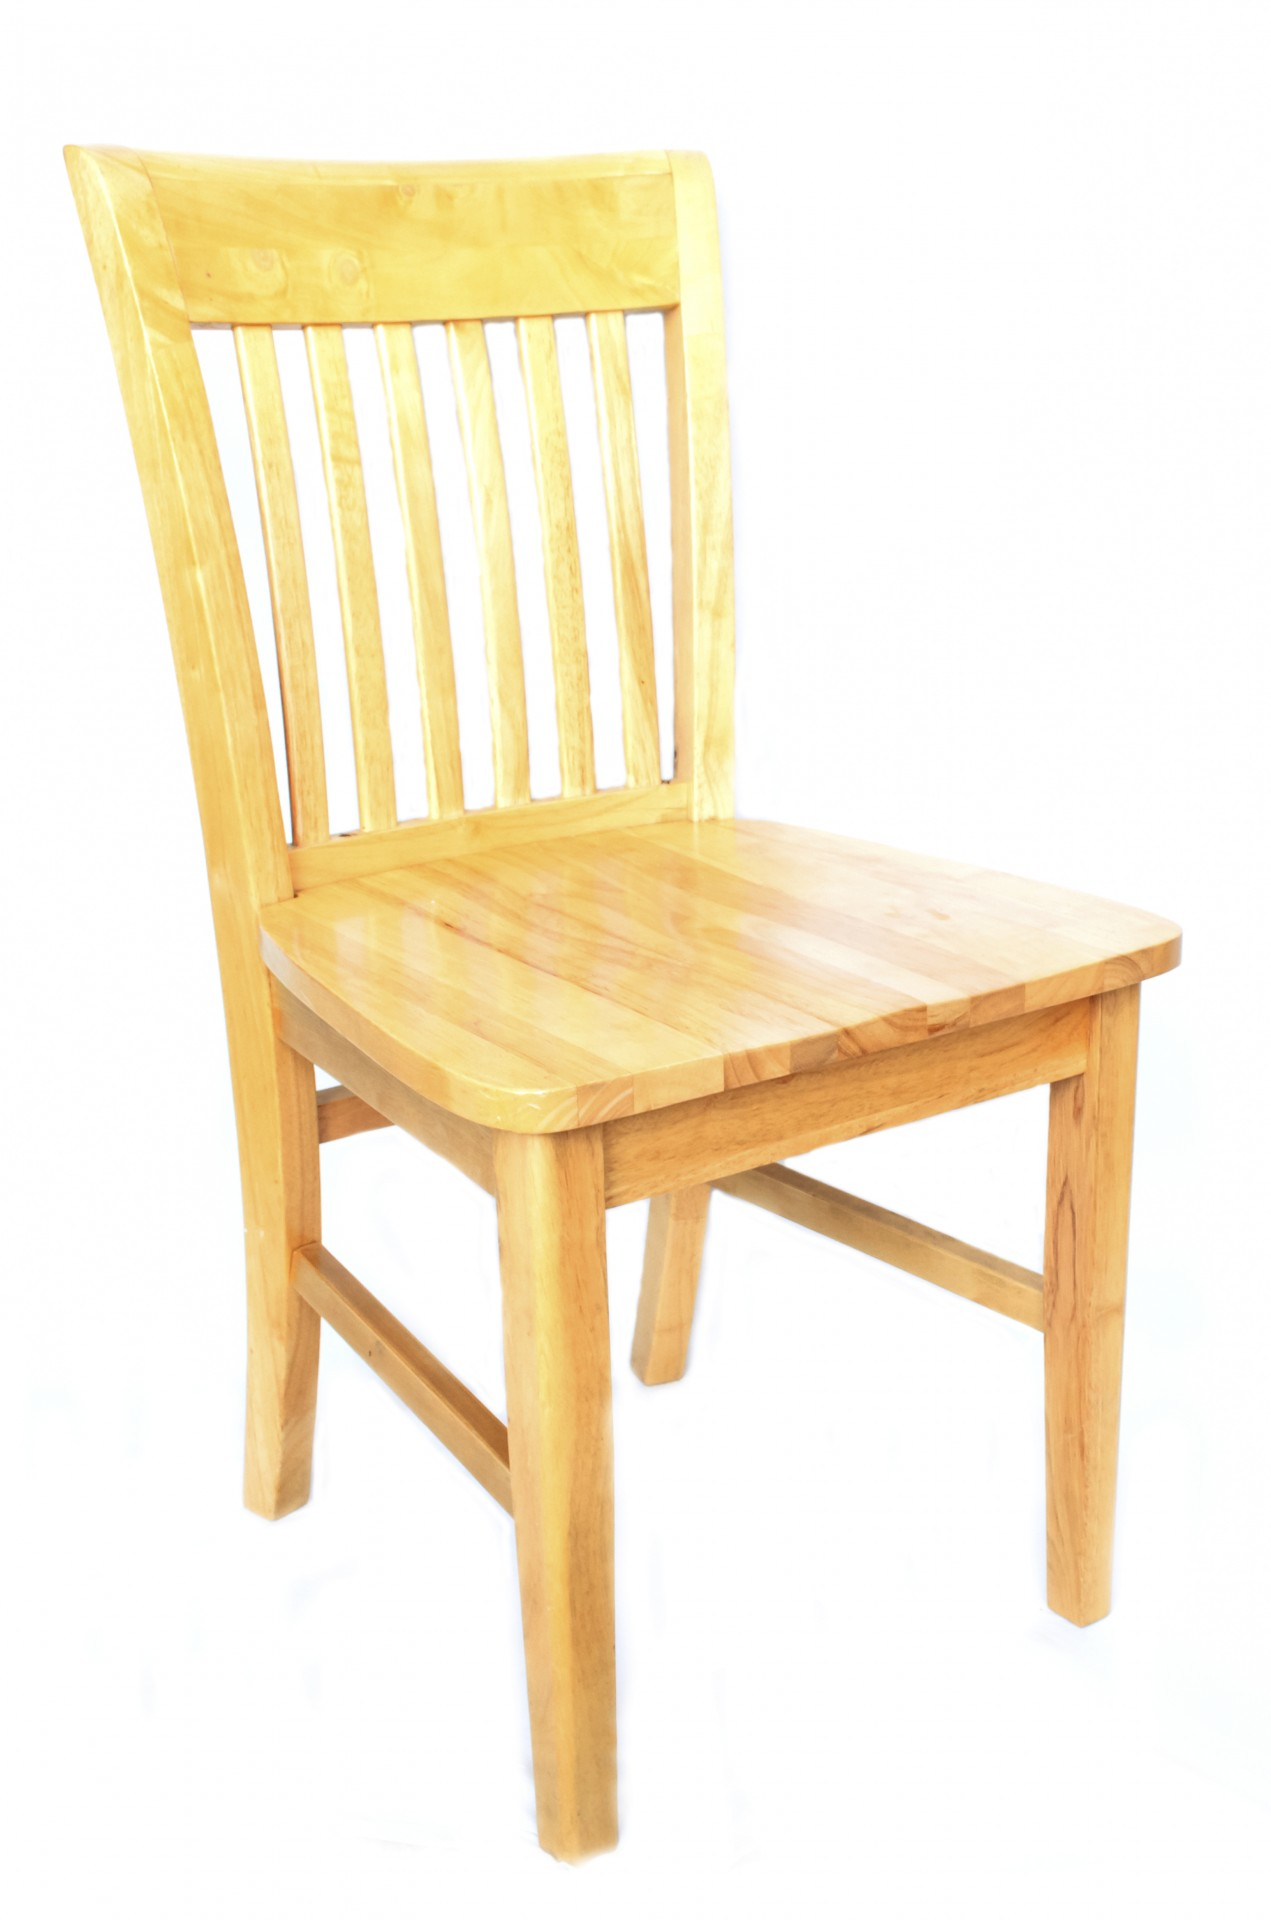 kitchen chairs wood motor for sale wooden chair free stock photo public domain pictures